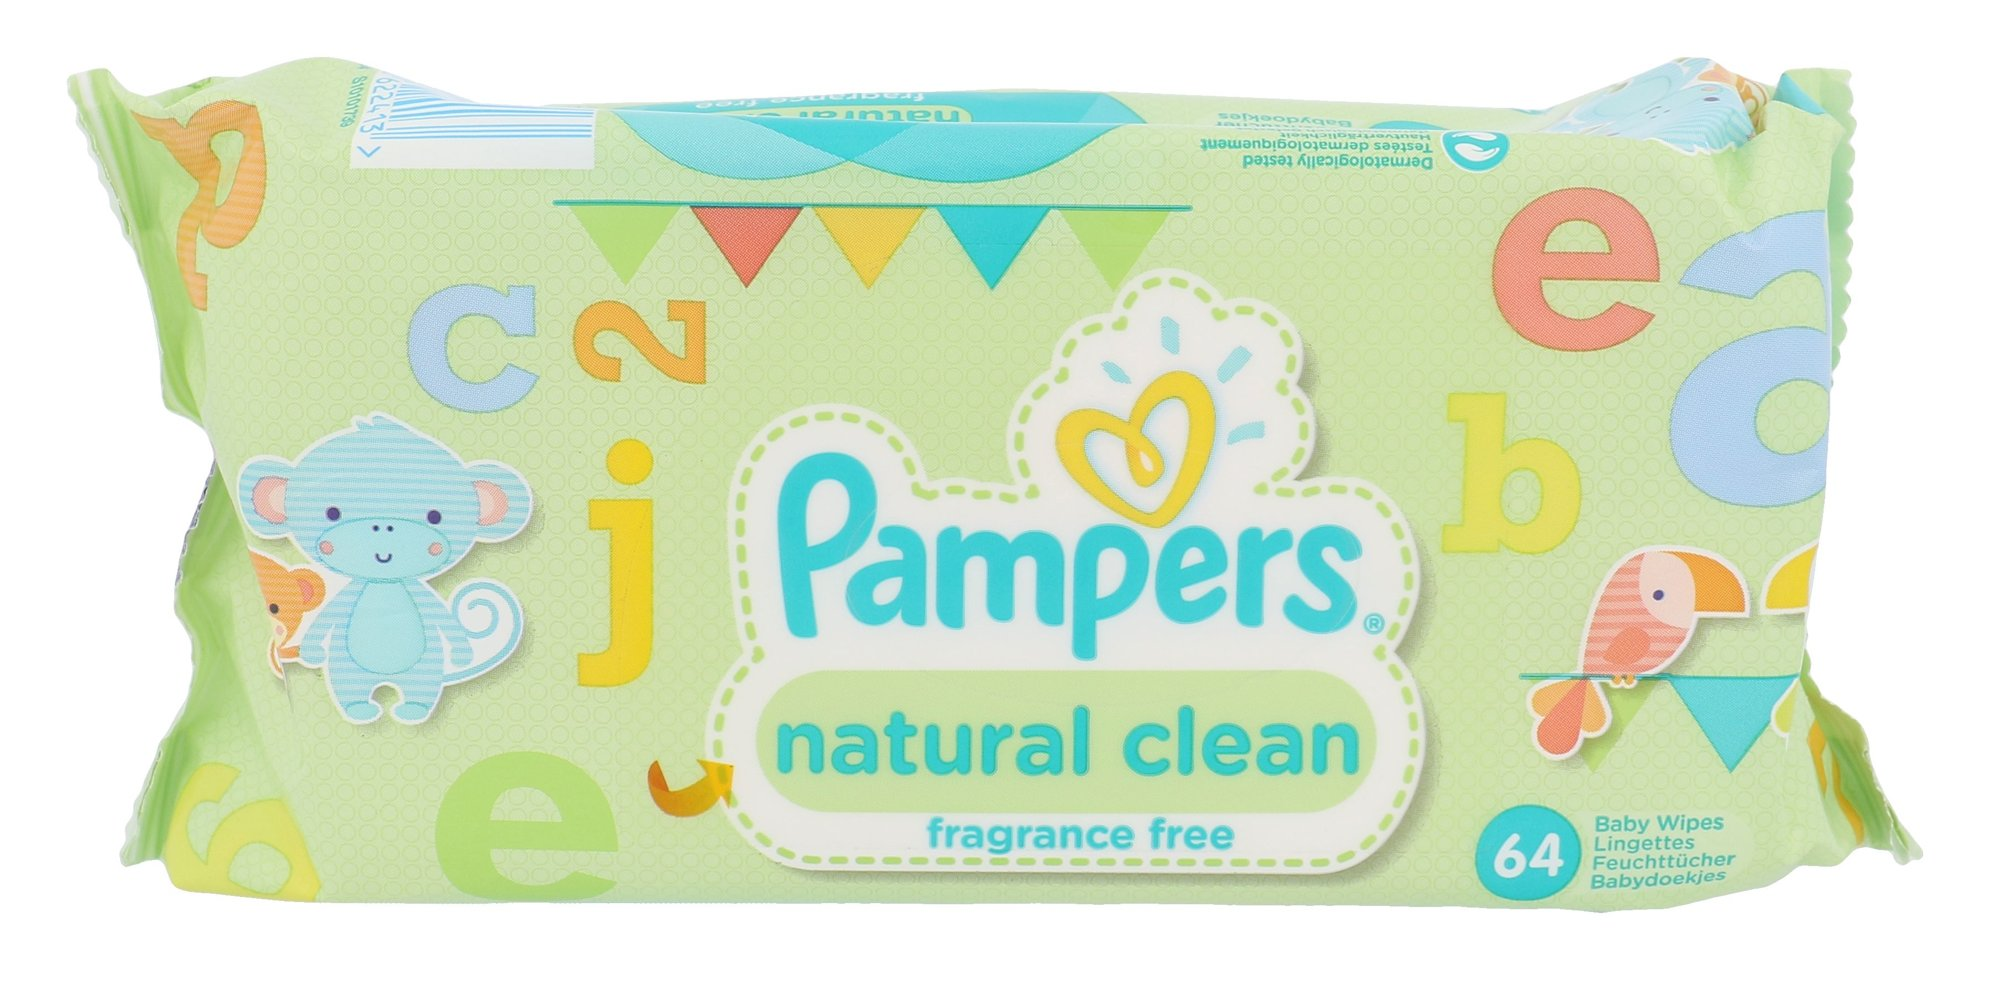 Pampers Baby Wipes Cosmetic 64ml